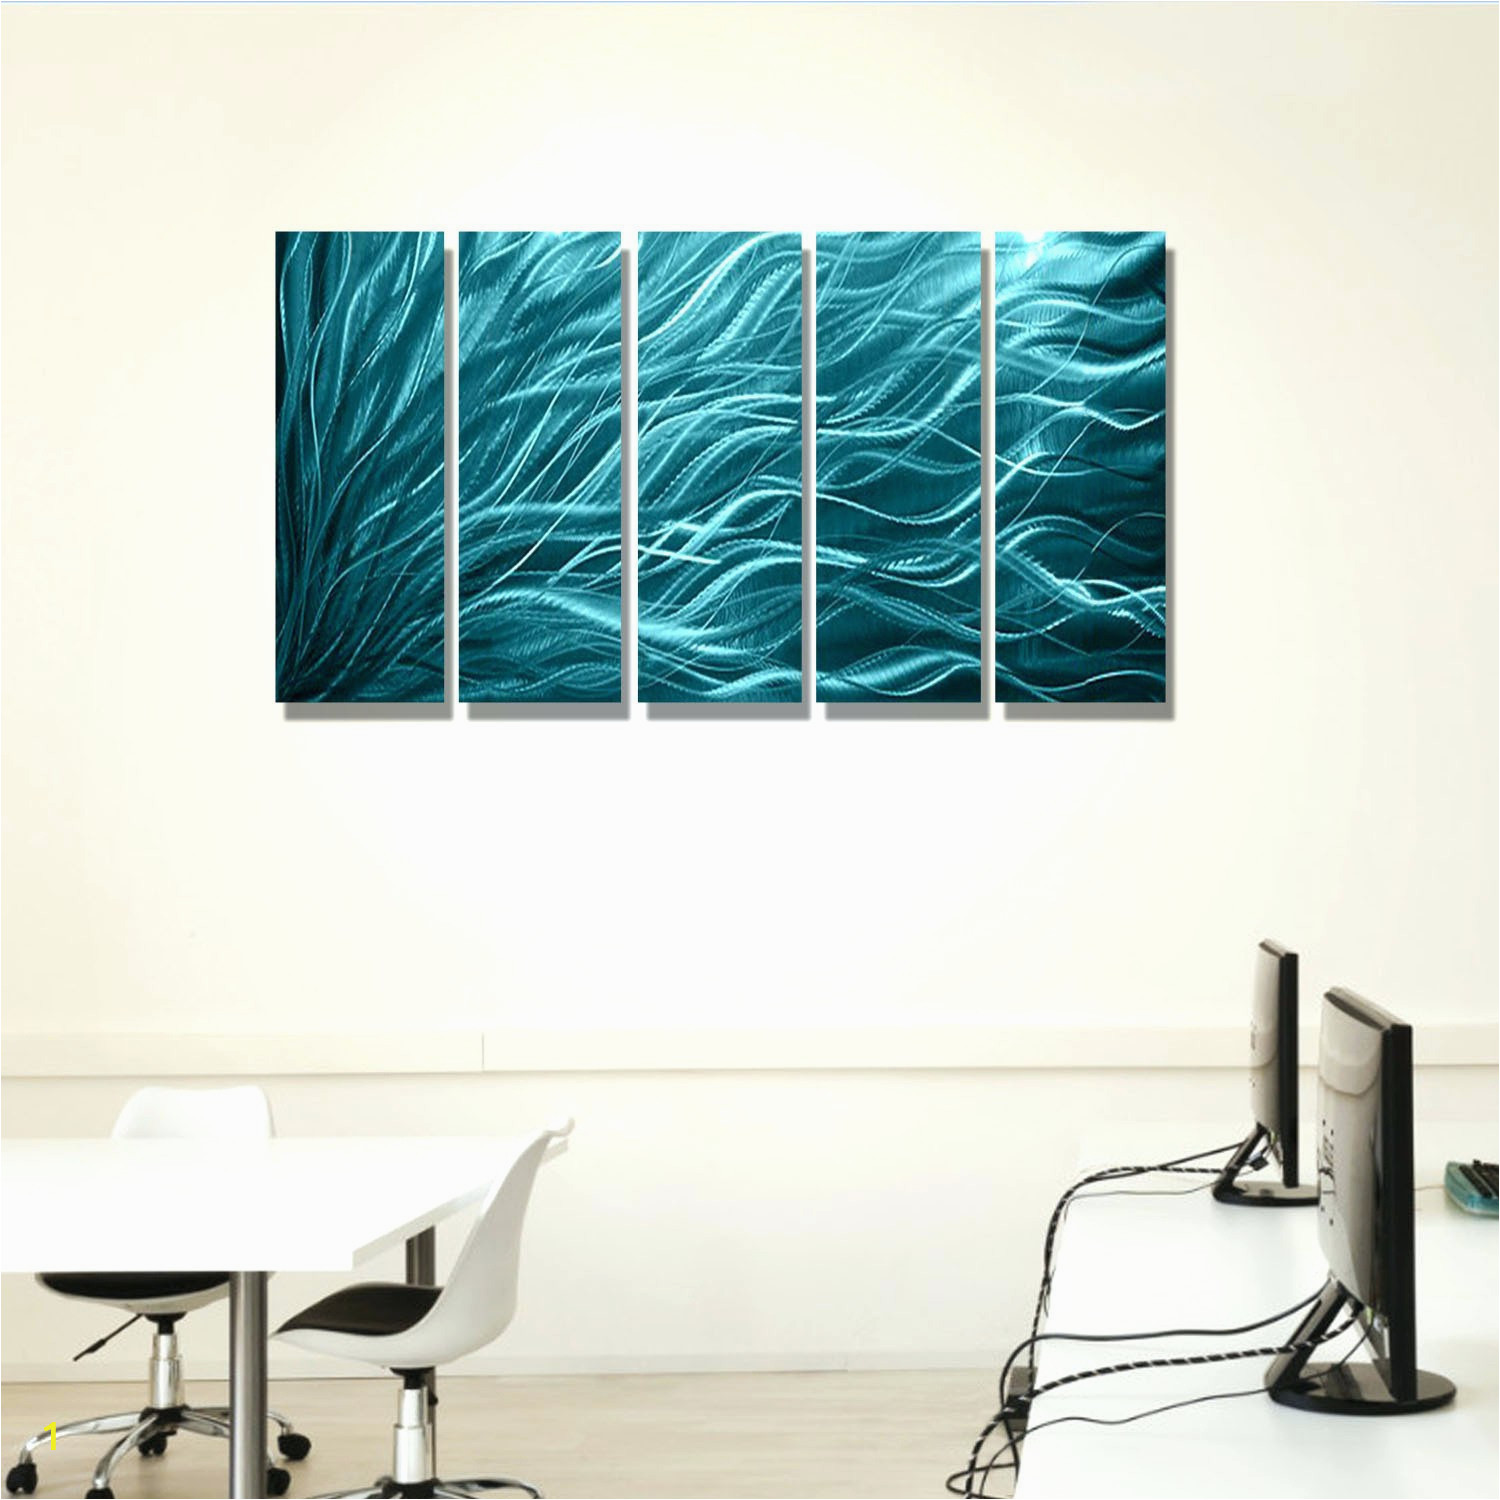 metal wall art panels fresh 1 kirkland wall decor home design 0d with best office wall art of best office wall art